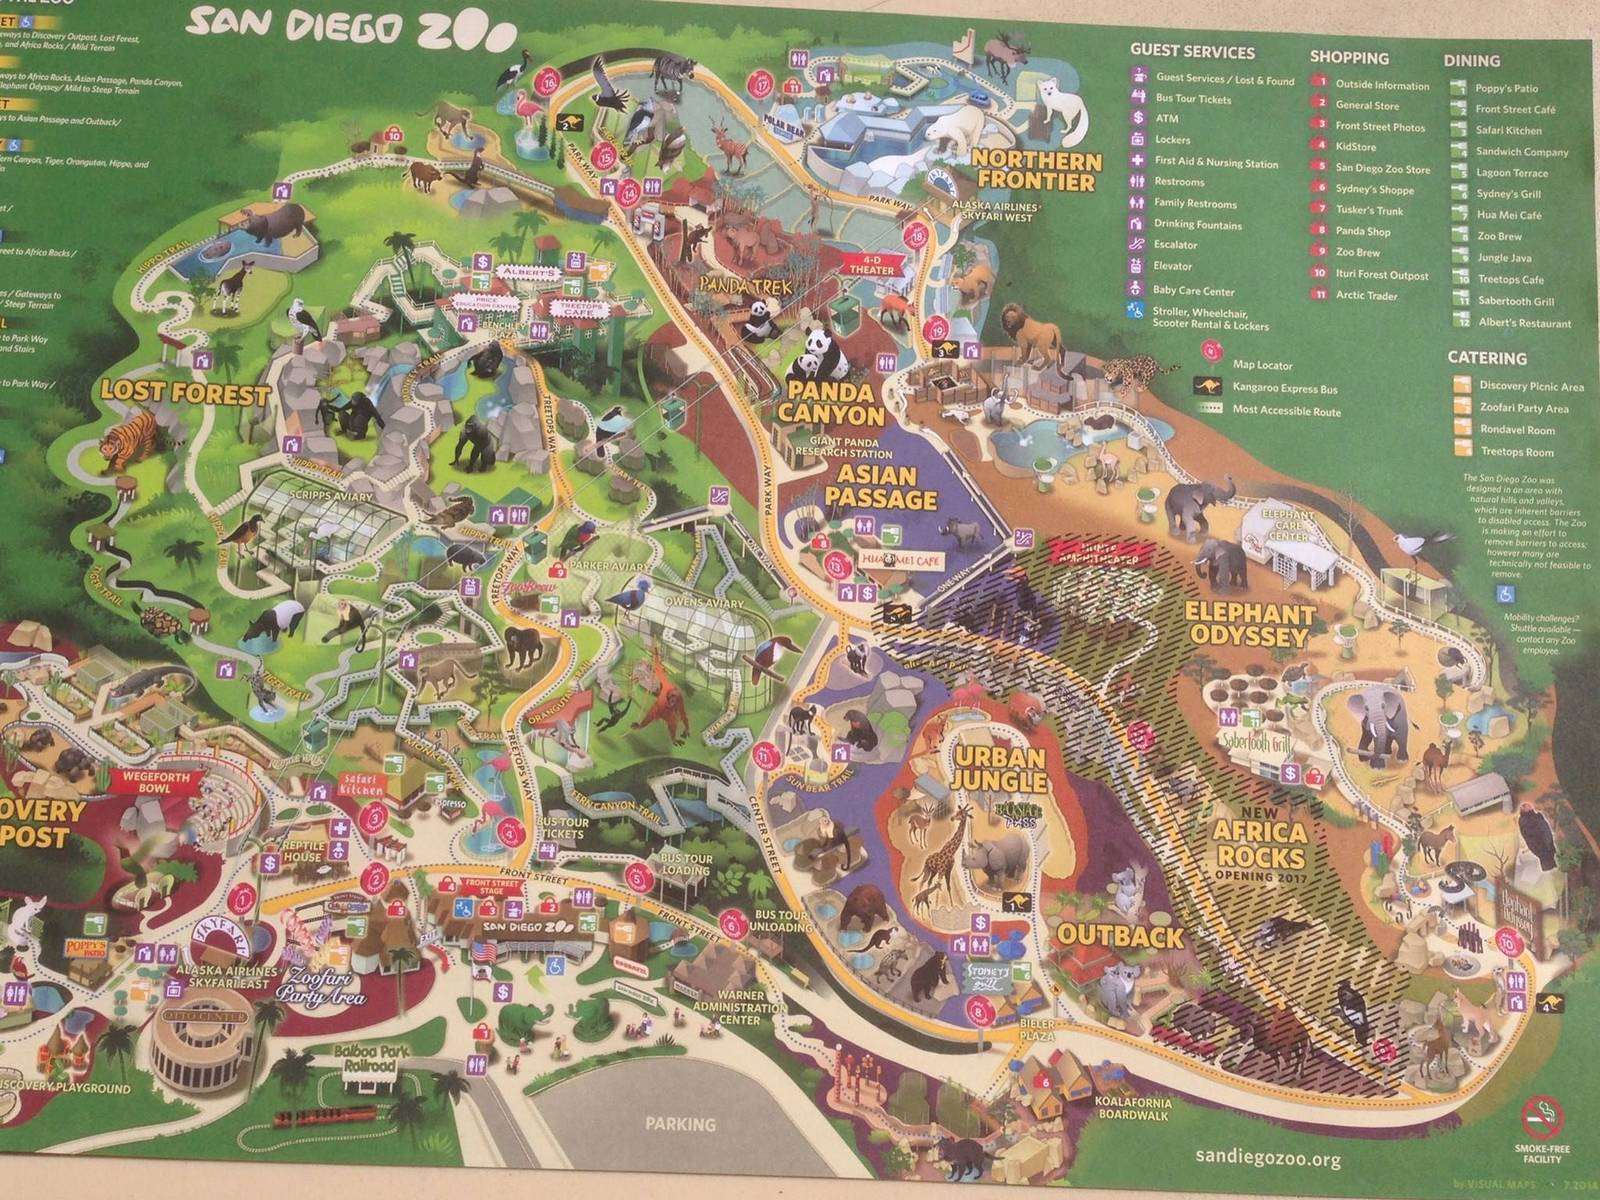 New Map Showing Africa Rocks Opening ZooChat - San diego zoo map